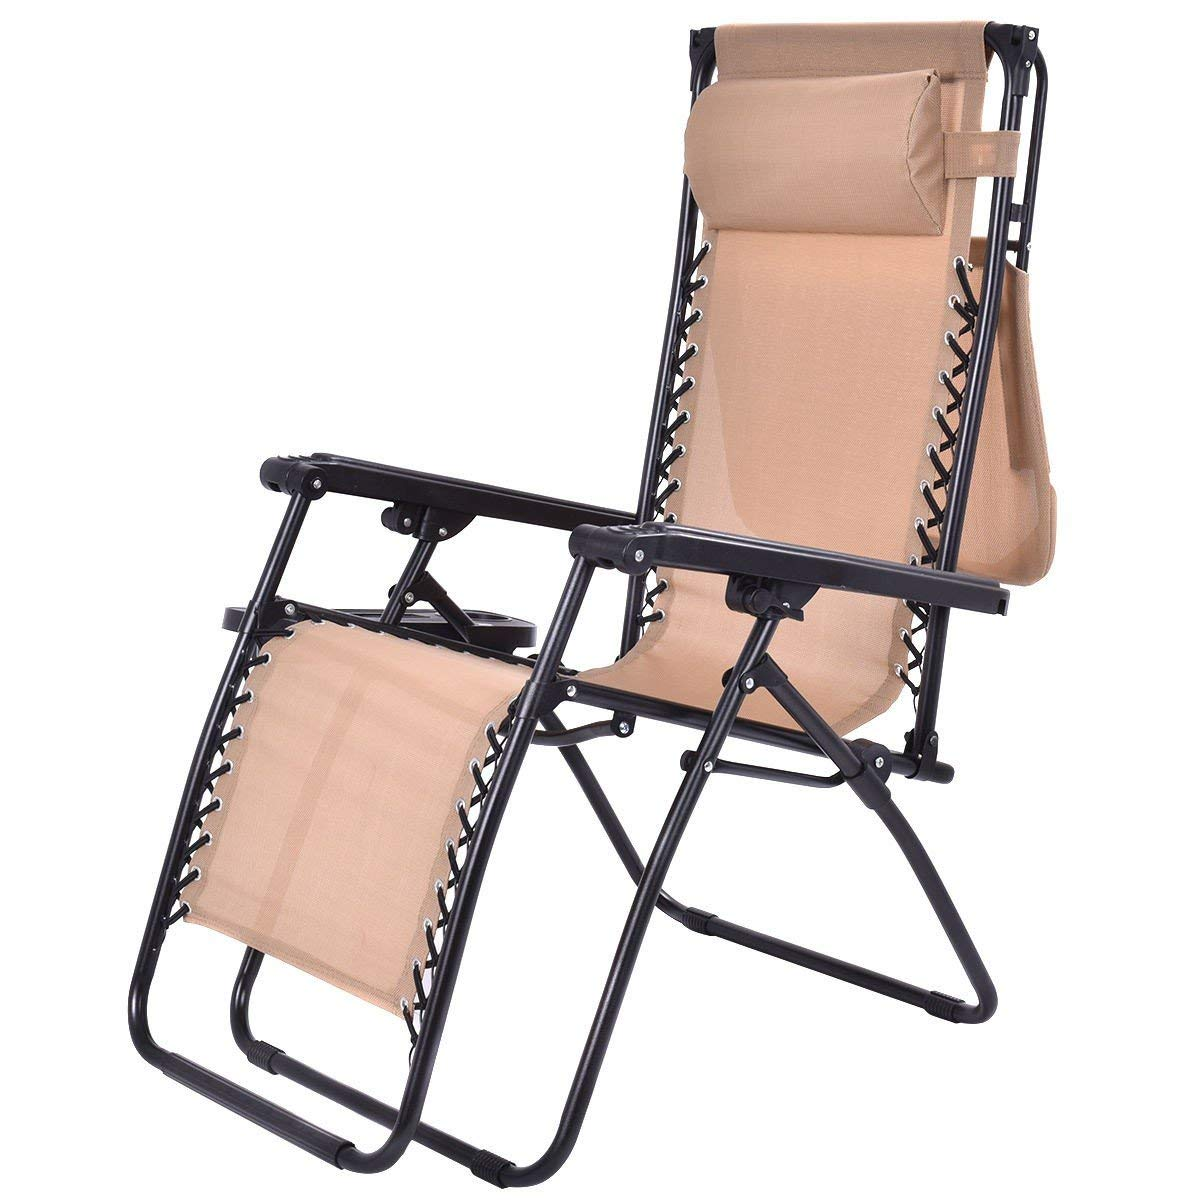 Get Quotations · MyEasyShopping Beige Folding Recliner Zero Gravity Lounge  Chair Lounge Zero Gravity Chairs Patio Outdoor Beach Folding - Cheap Zero Gravity Patio Recliner, Find Zero Gravity Patio Recliner